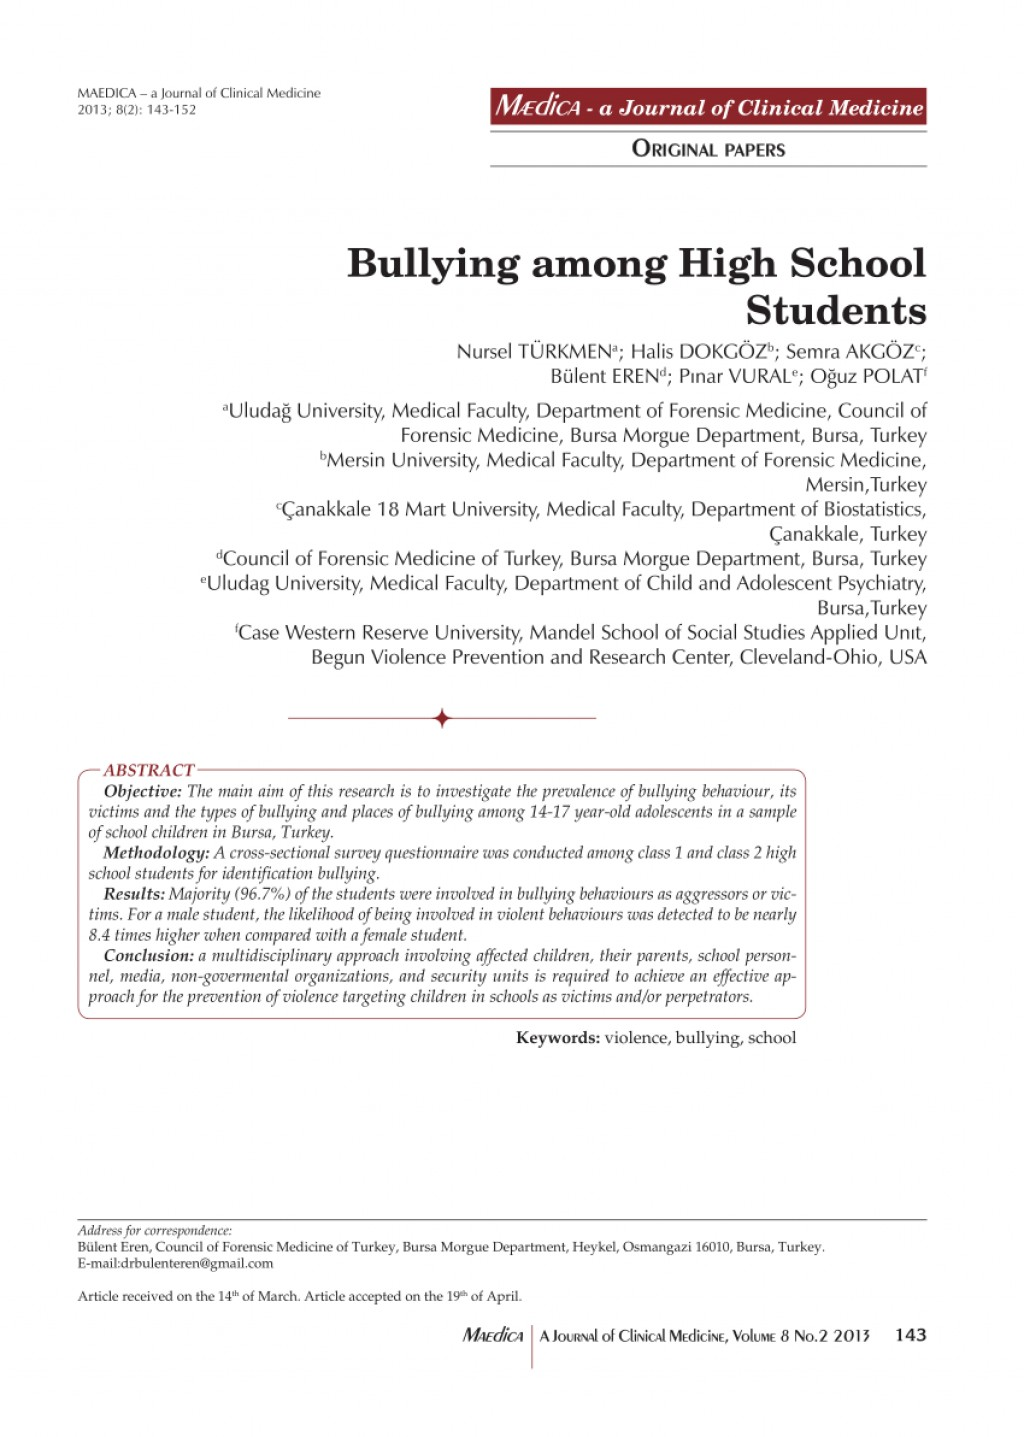 001 Research Paper Largepreview Bullying Example Beautiful Pdf Large